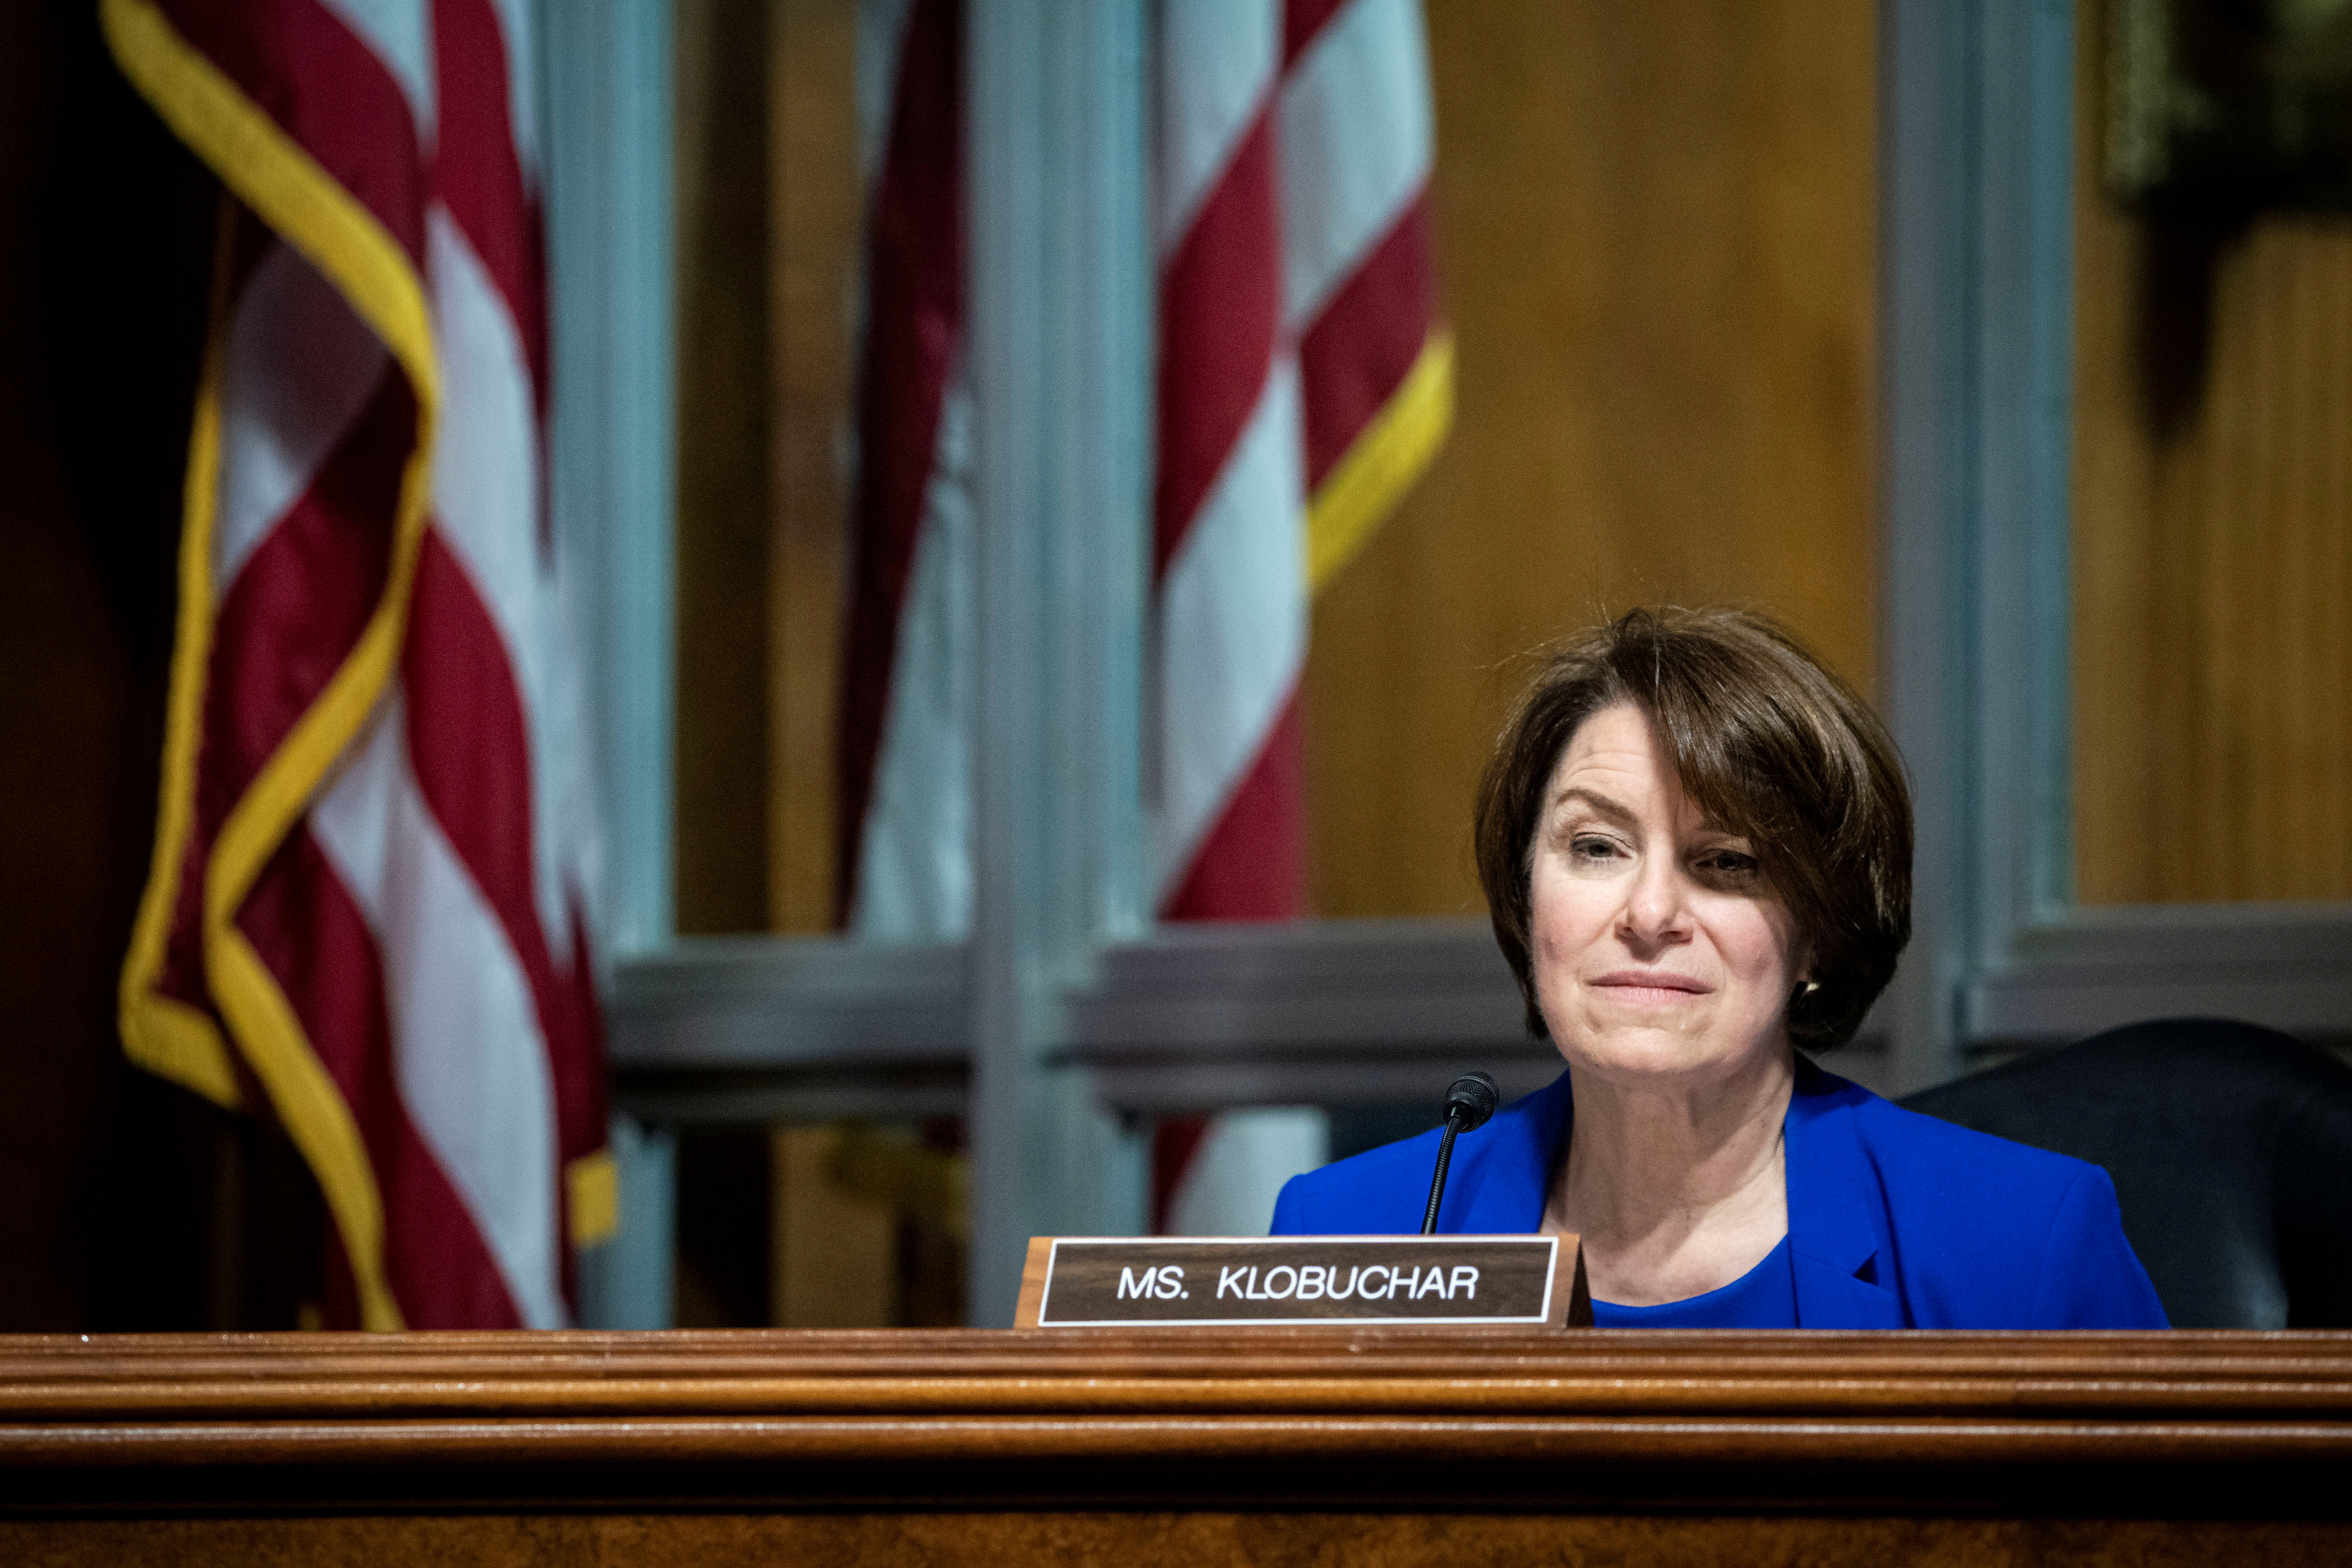 U.S. Senator Amy Klobuchar listens during a hearing of the Senate Judiciary Subcommittee on Privacy, Technology, and the Law, in Washington, D.C., U.S., April 27, 2021. Al Drago/Pool via REUTERS/File Photo